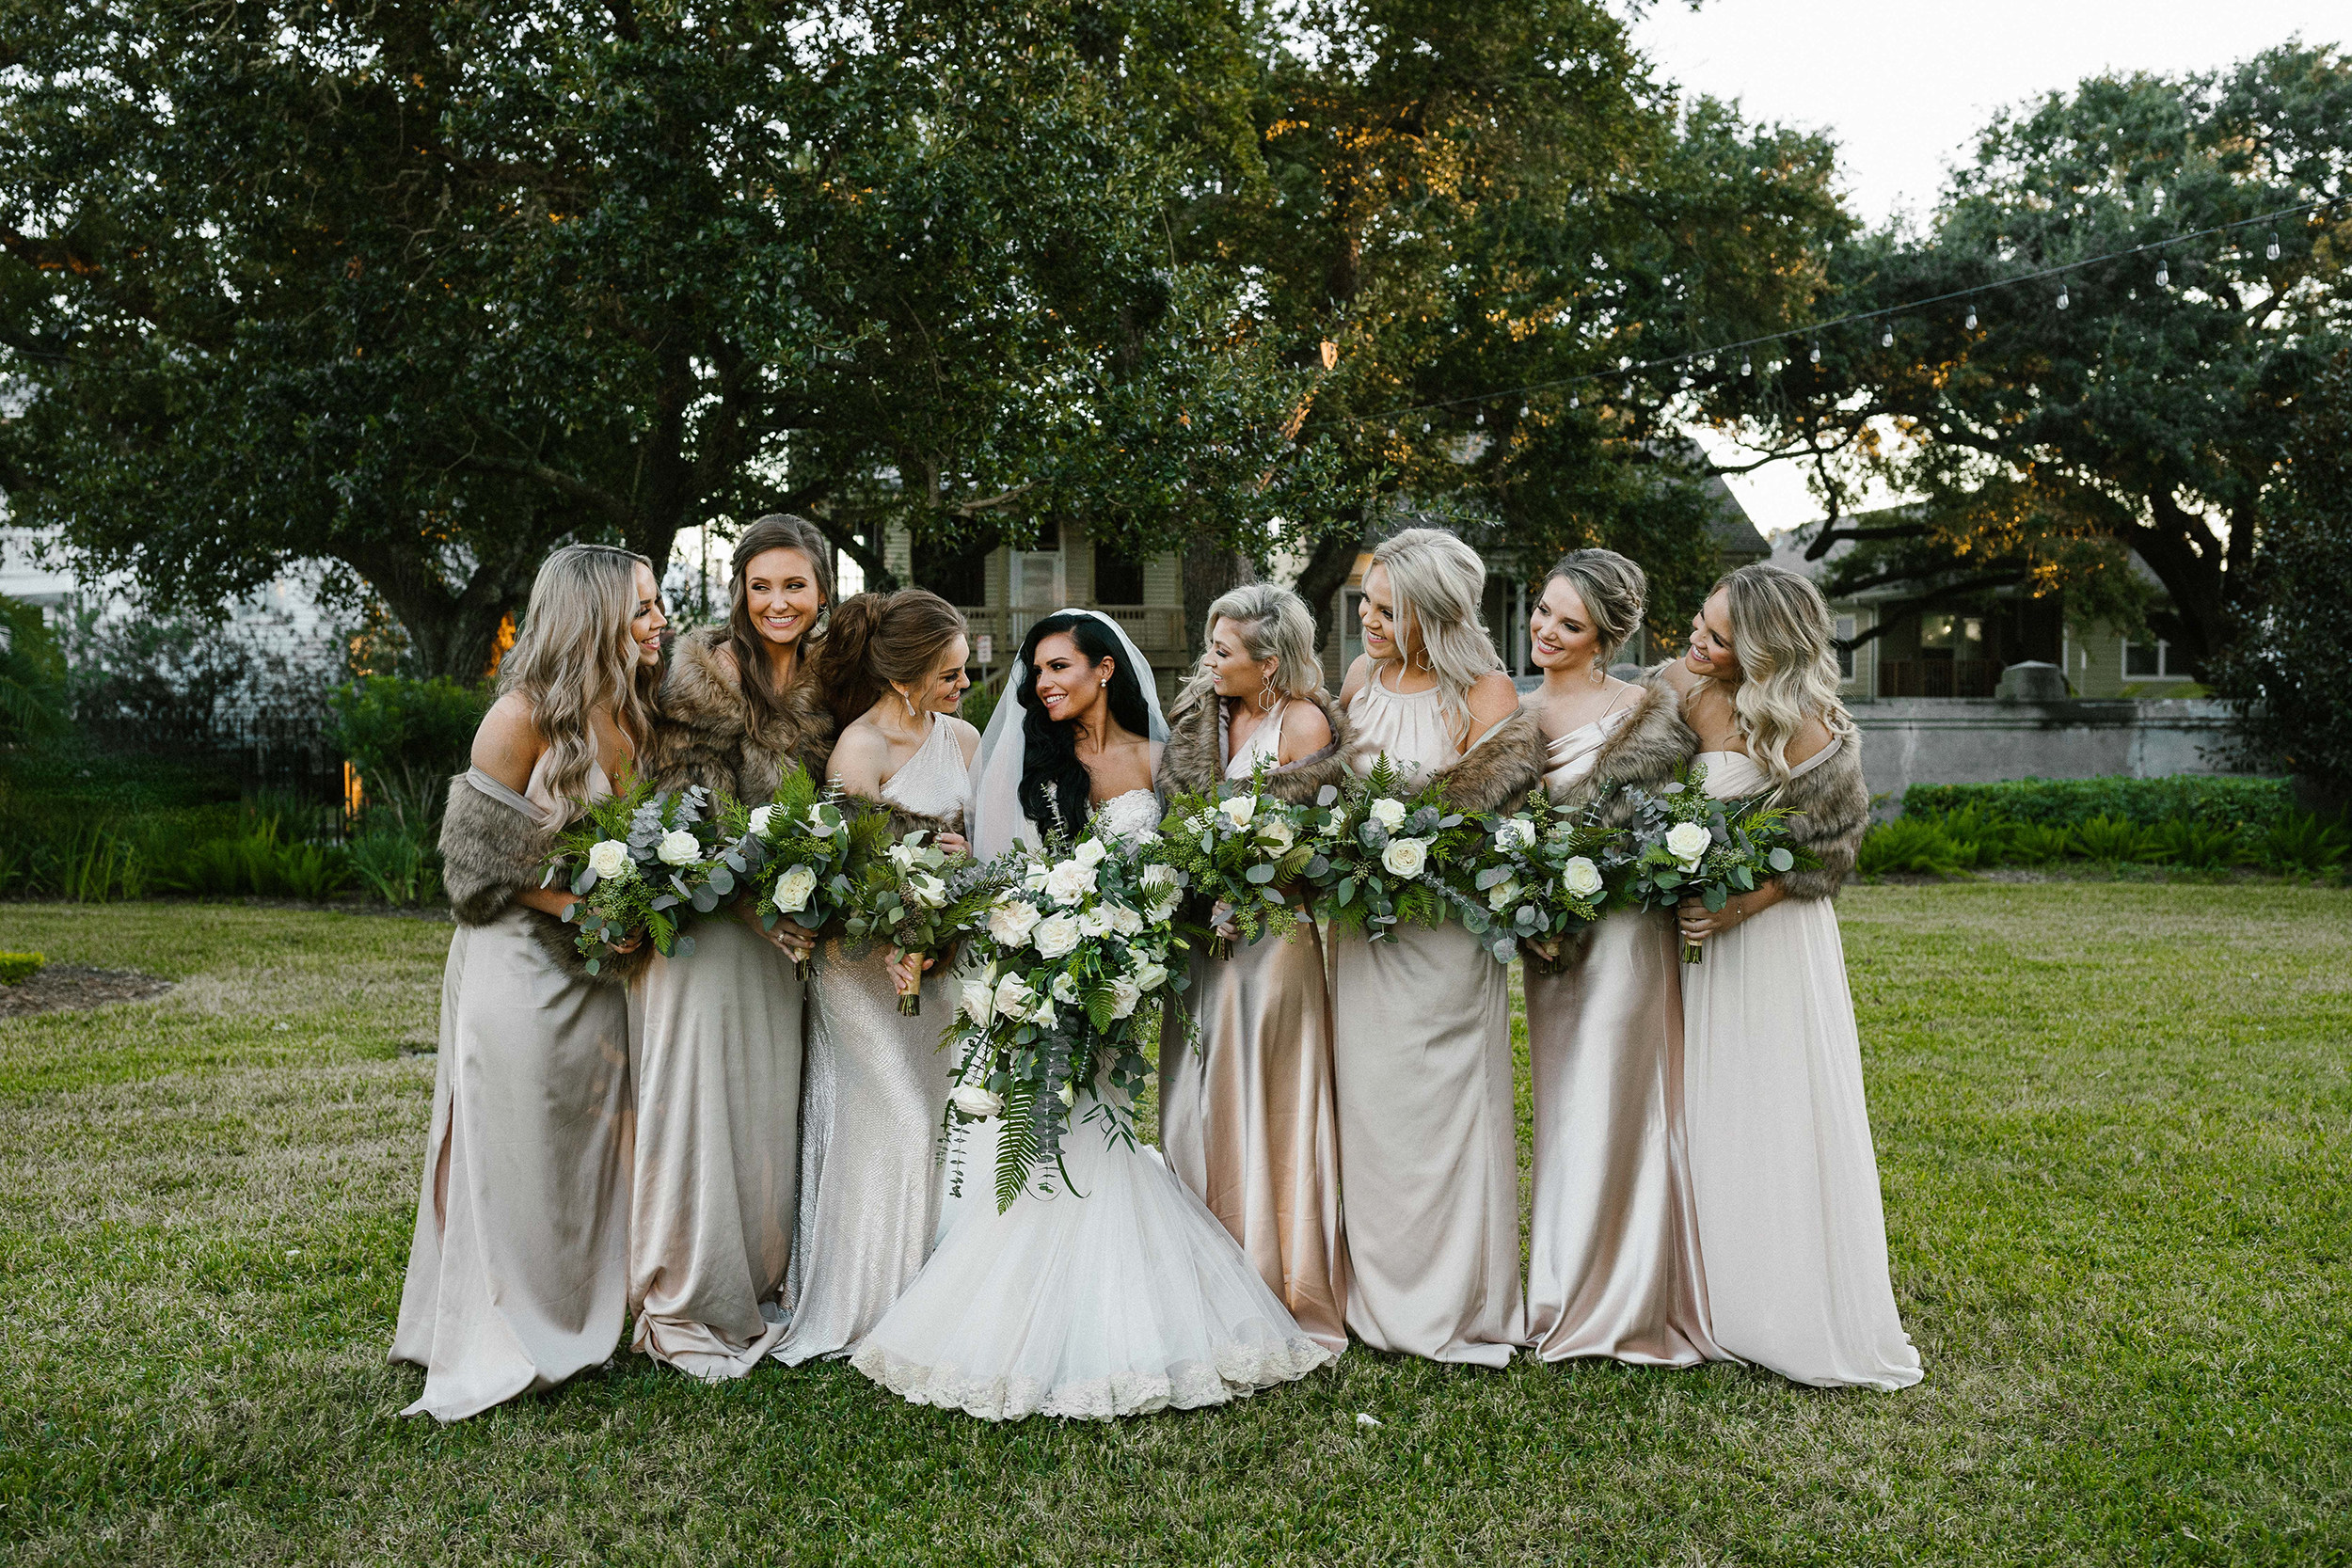 Bride and Bridesmaids' Flowers